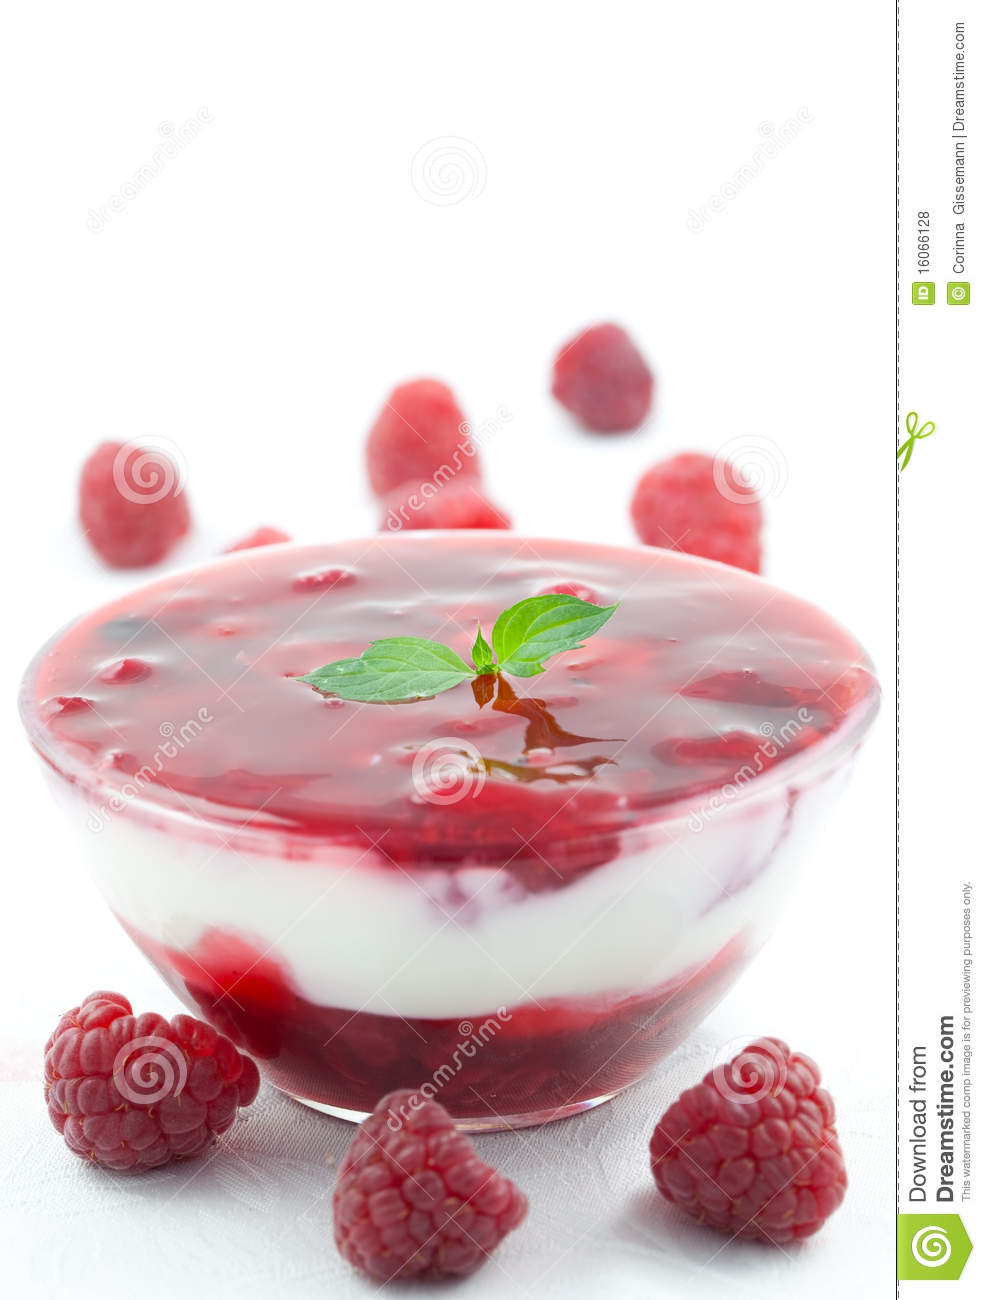 Fruit Dessert With Yogurt Royalty Free Stock Photos ...